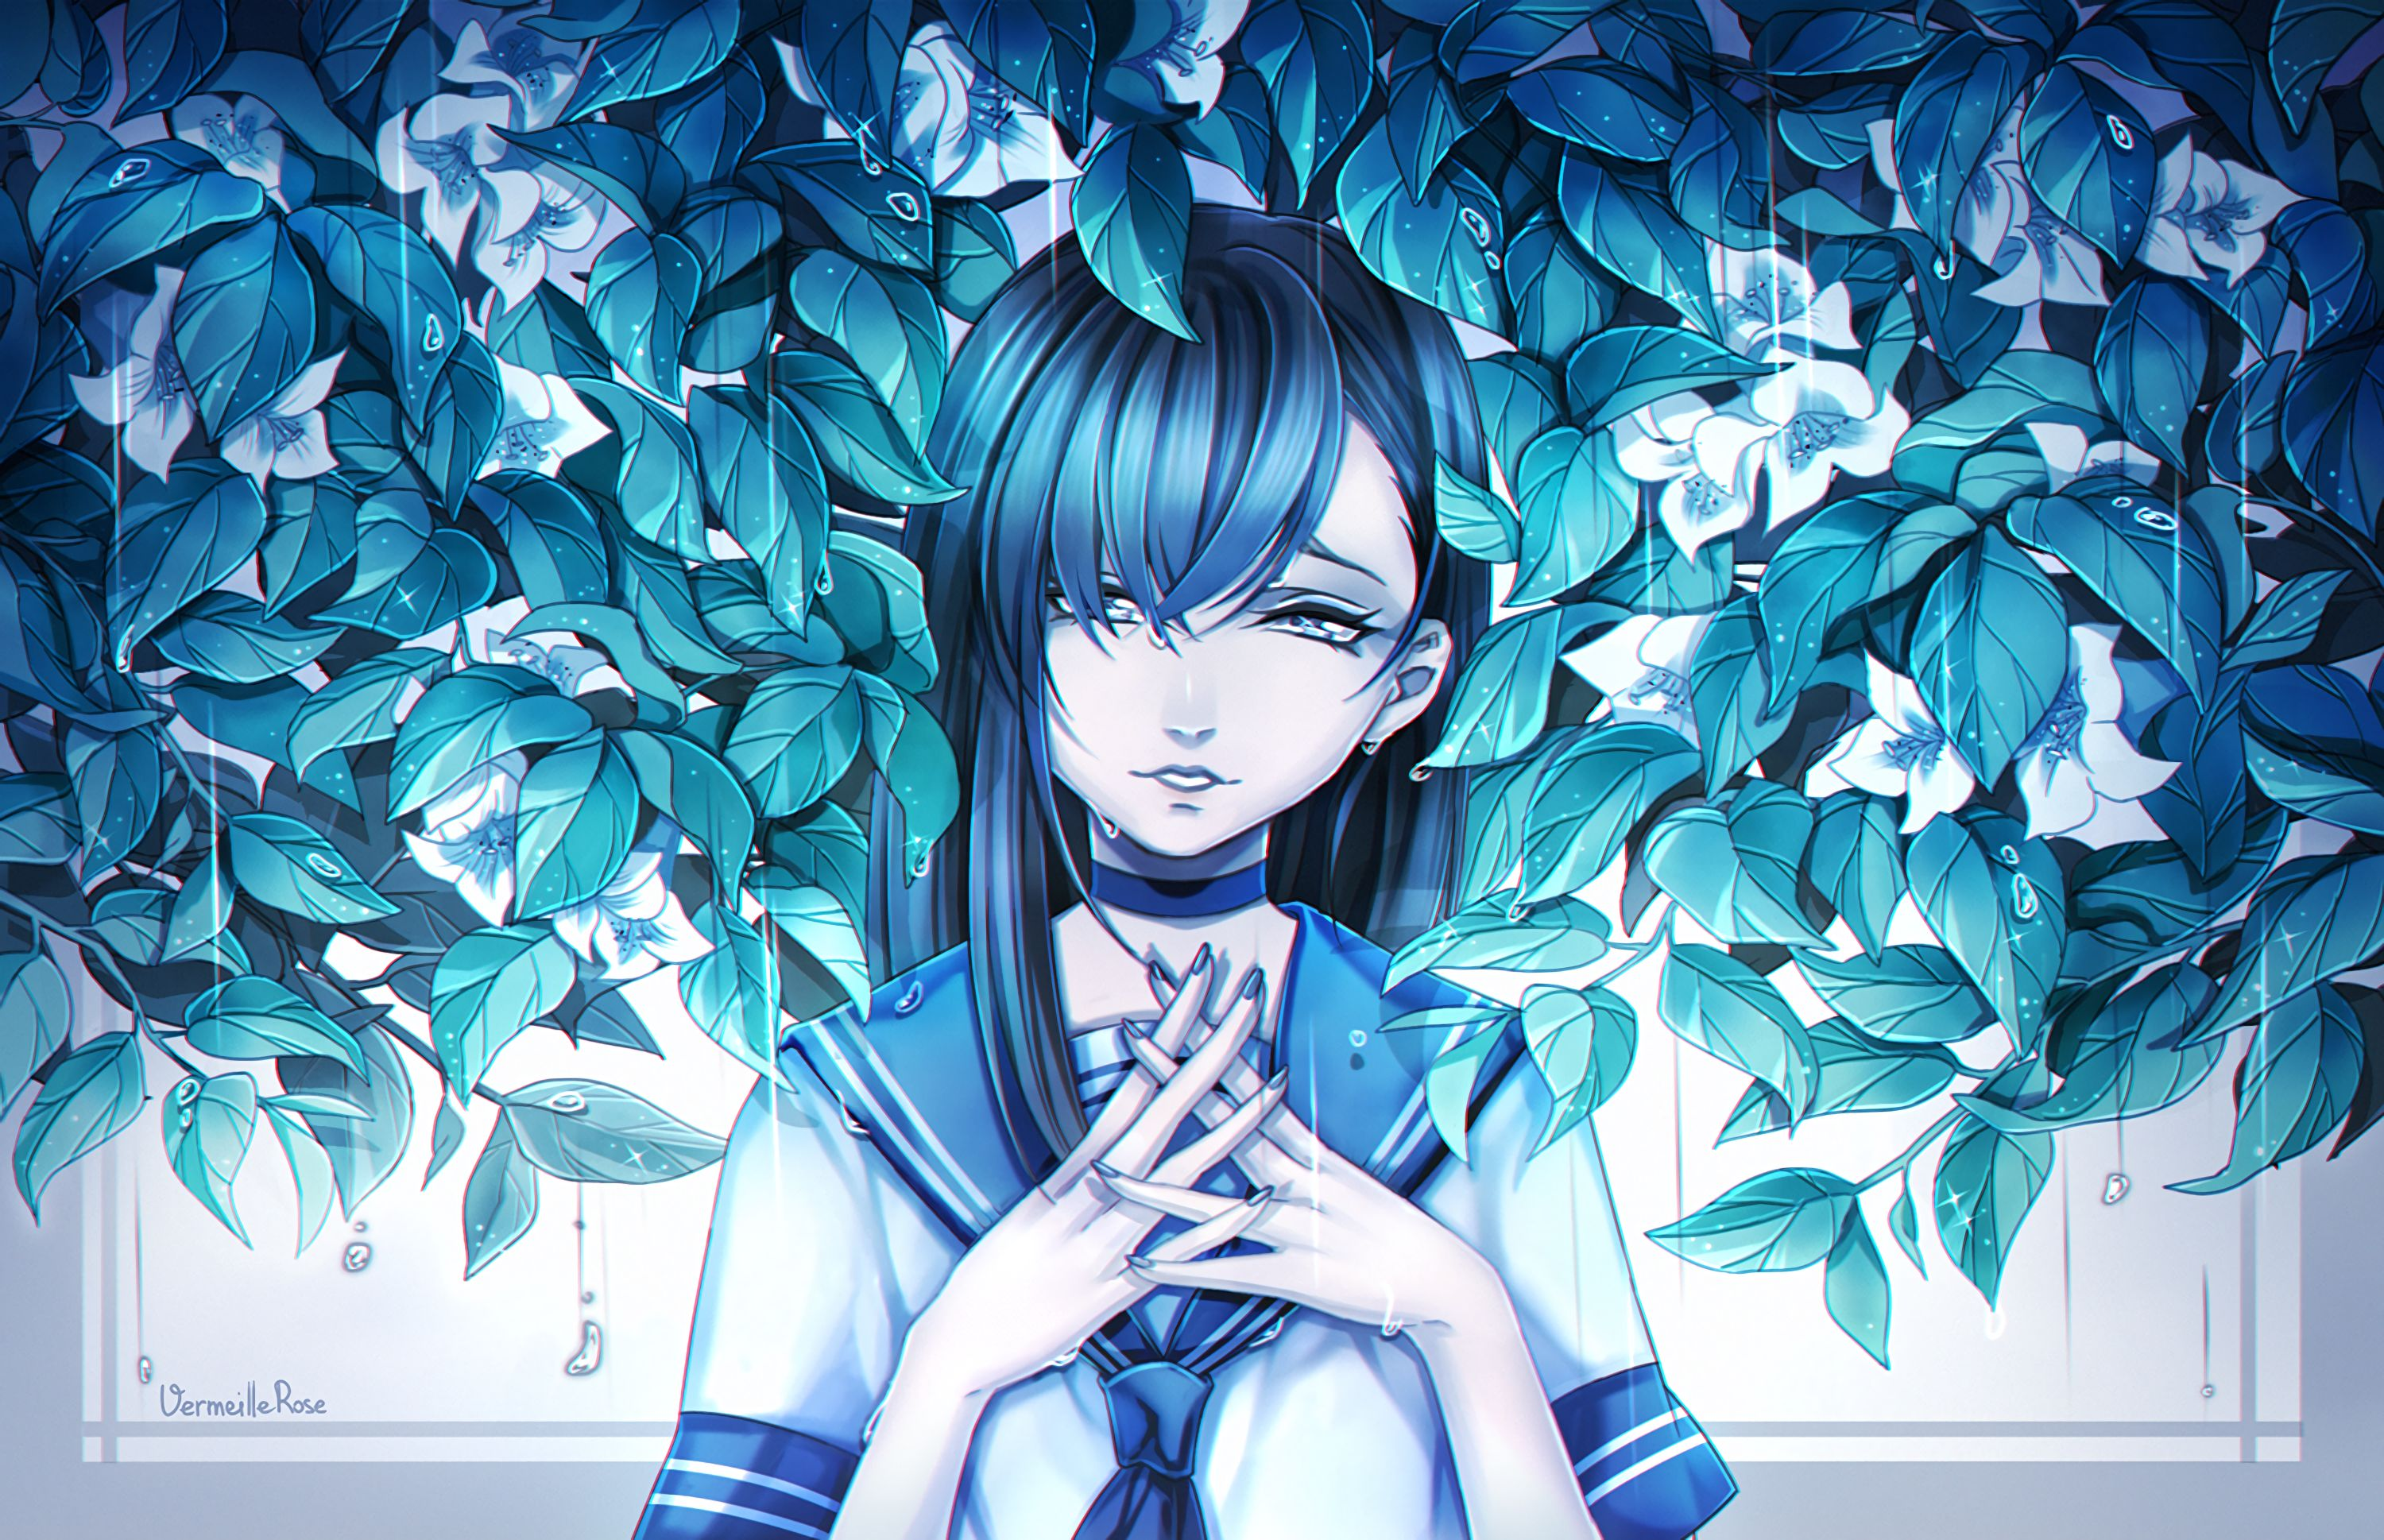 153026 download wallpaper Anime, Girl, Animeshka, Sadness, Sorrow, Leaves, Art screensavers and pictures for free